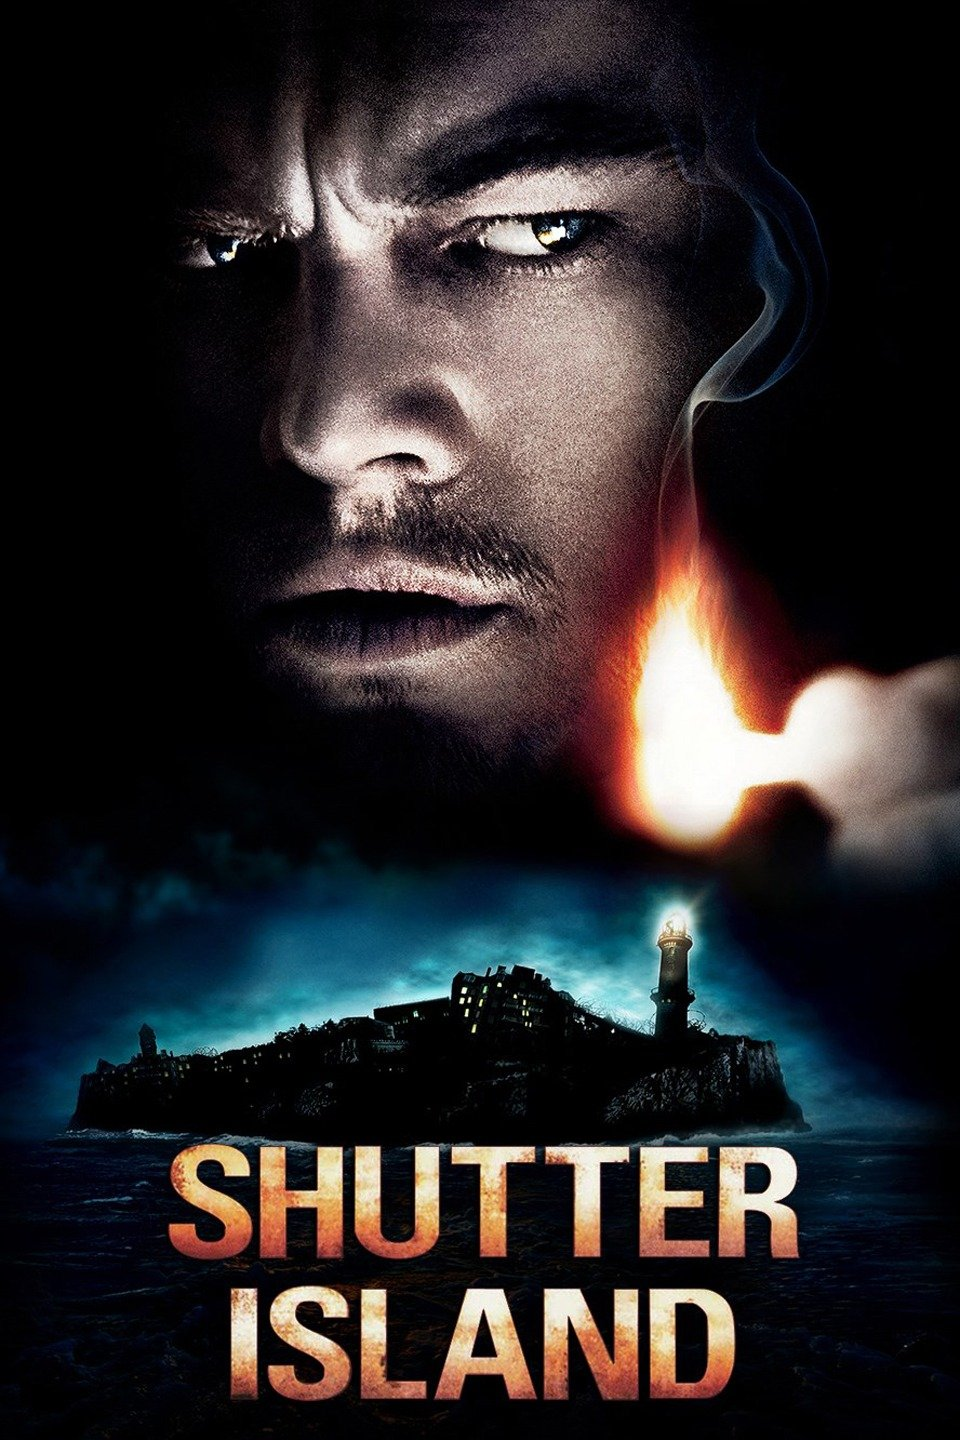 shutter movie poster analysis Shutter island is the story of two us marshals, teddy daniels (leonardo dicaprio) and chuck aule (mark ruffalo), who are summoned to a remote and barren island off the coast of massachusetts to.